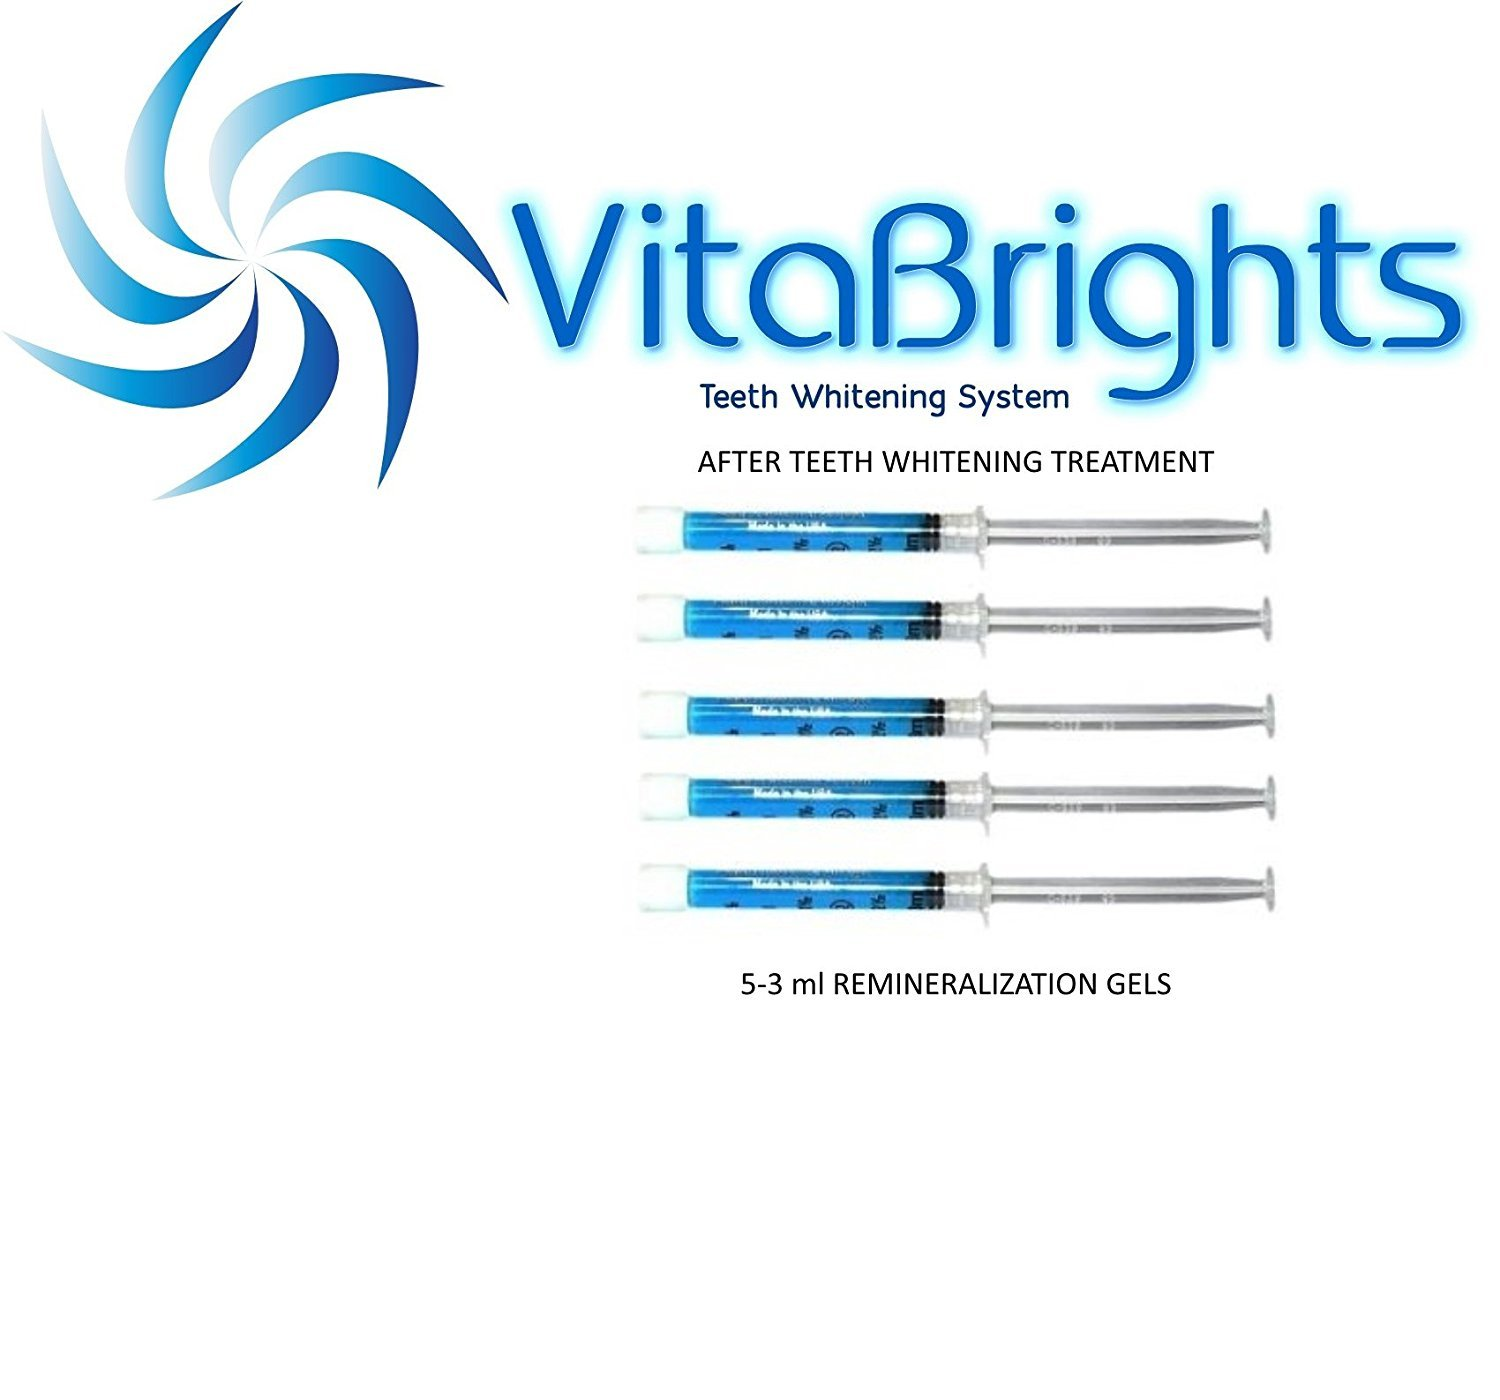 VitaBrights 5-3ml REMINERALIZATION GELS FOR AFTER TEETH WHITENING TREATMENT